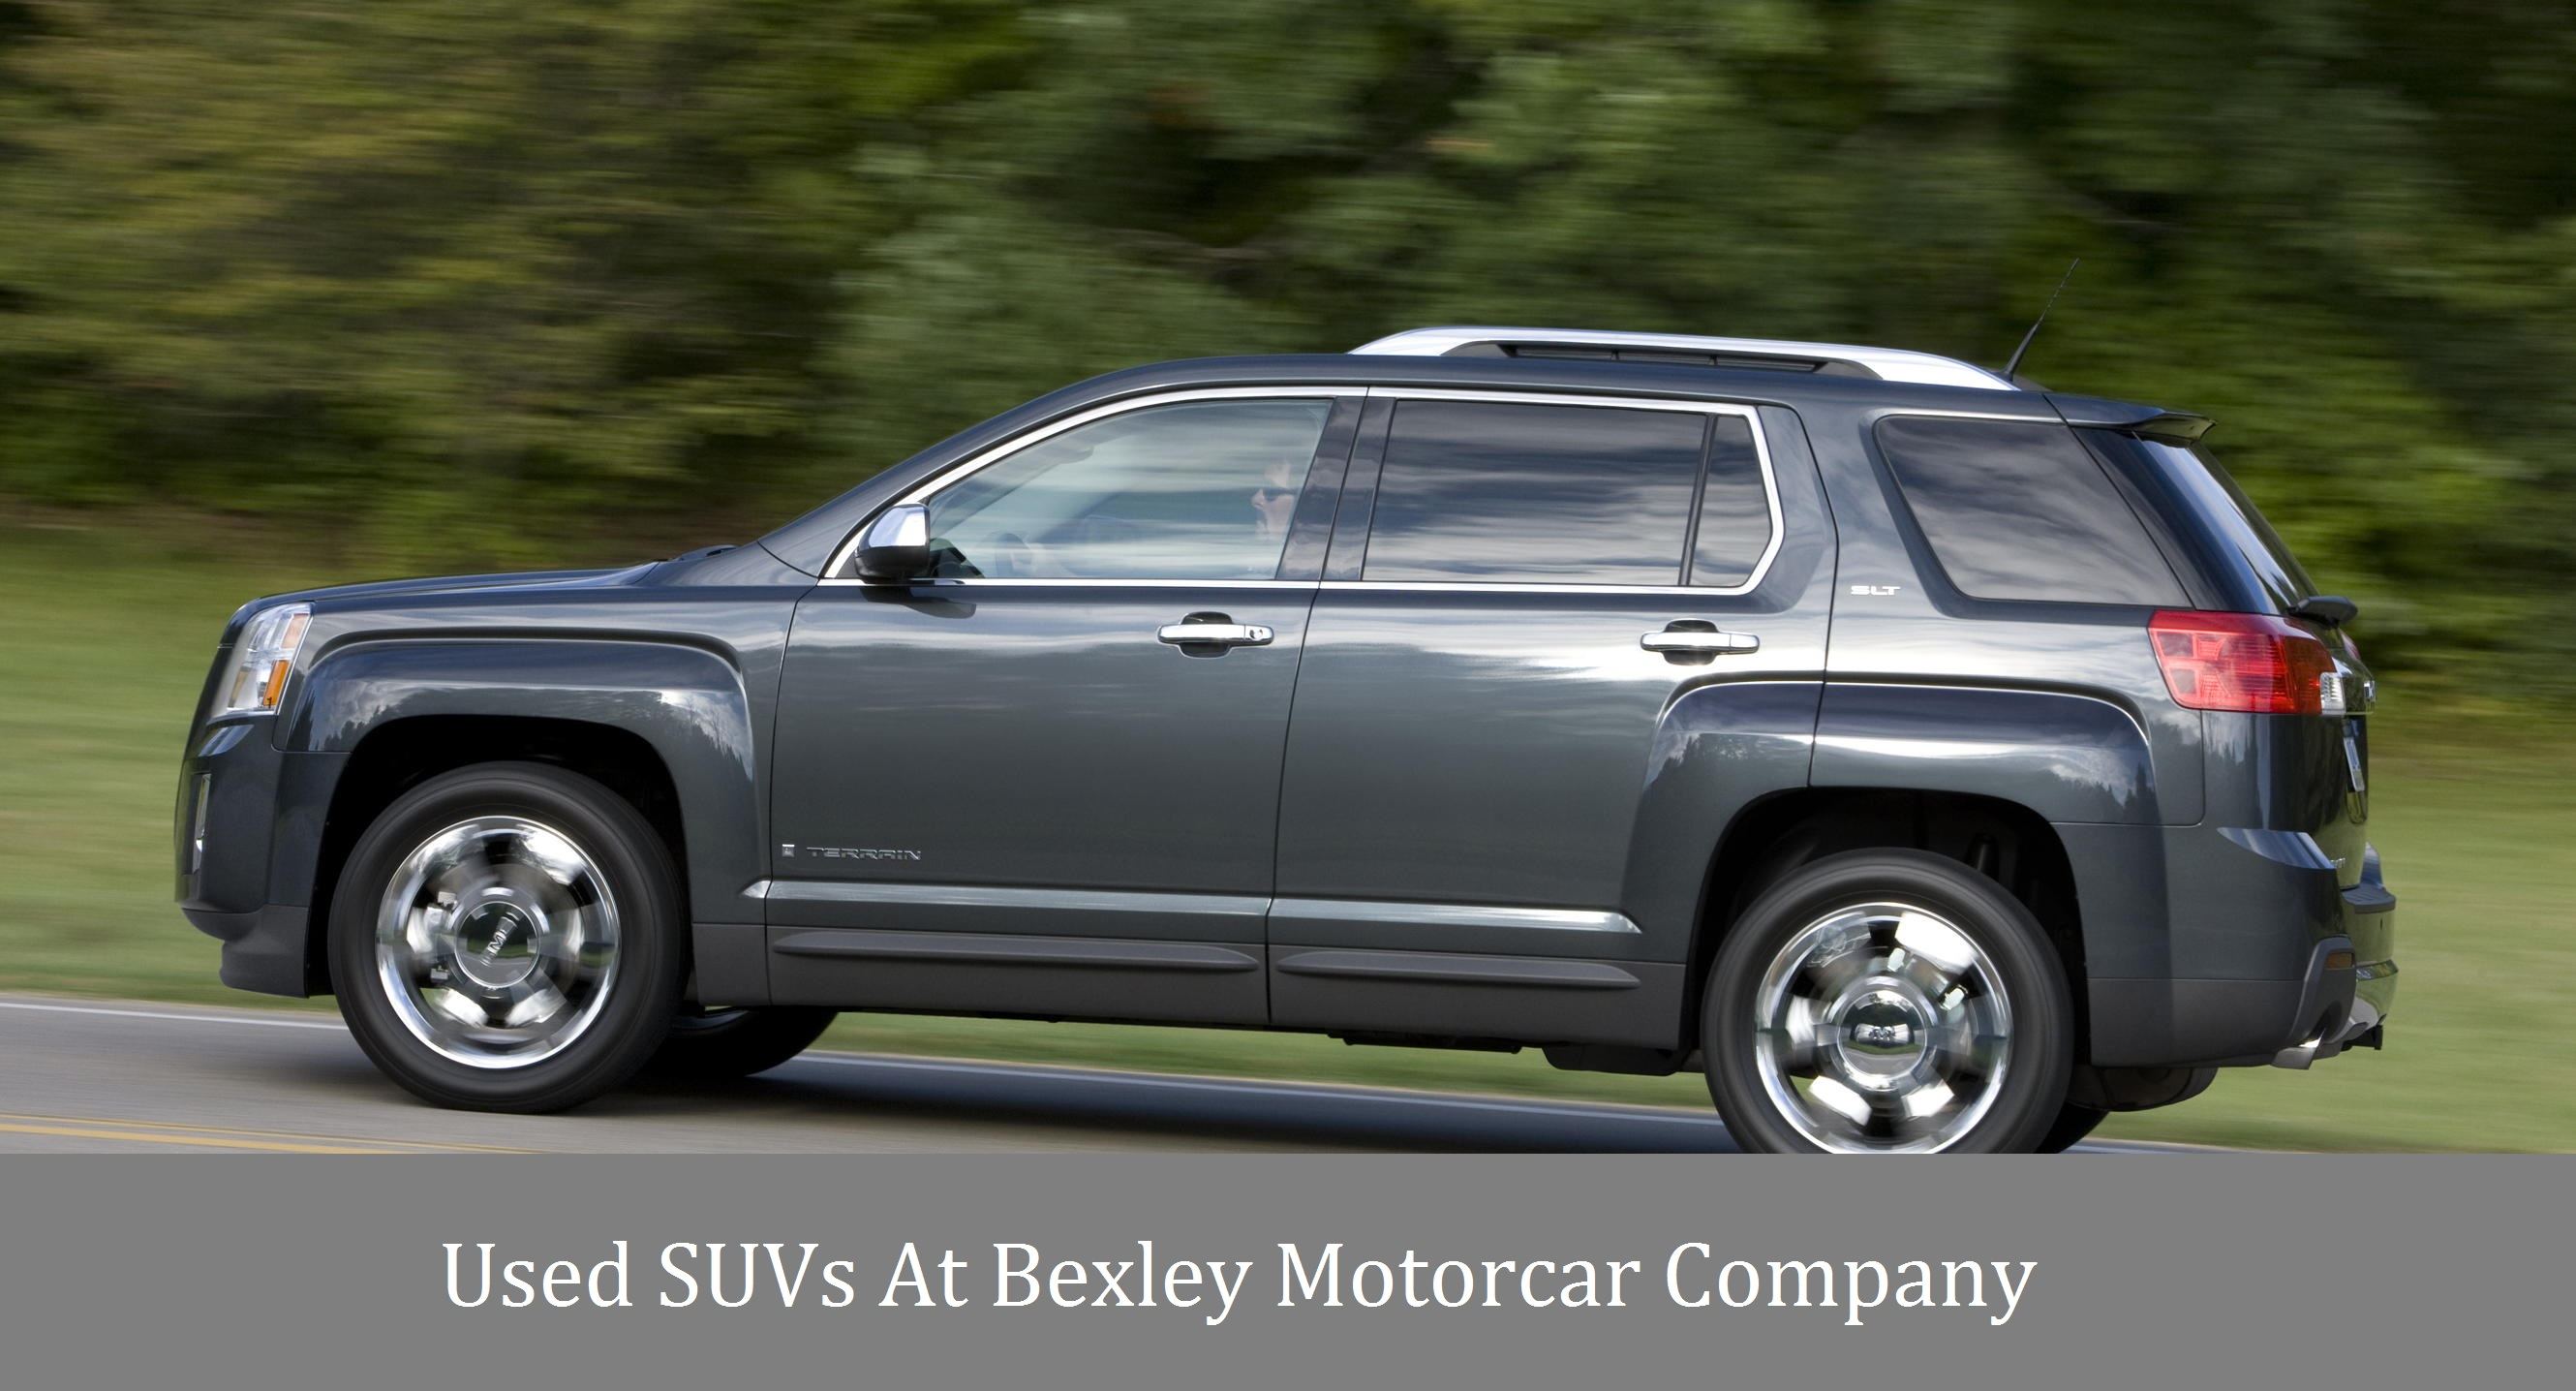 Used Suvs For Sale At Bexley Motorcar Co Bexley